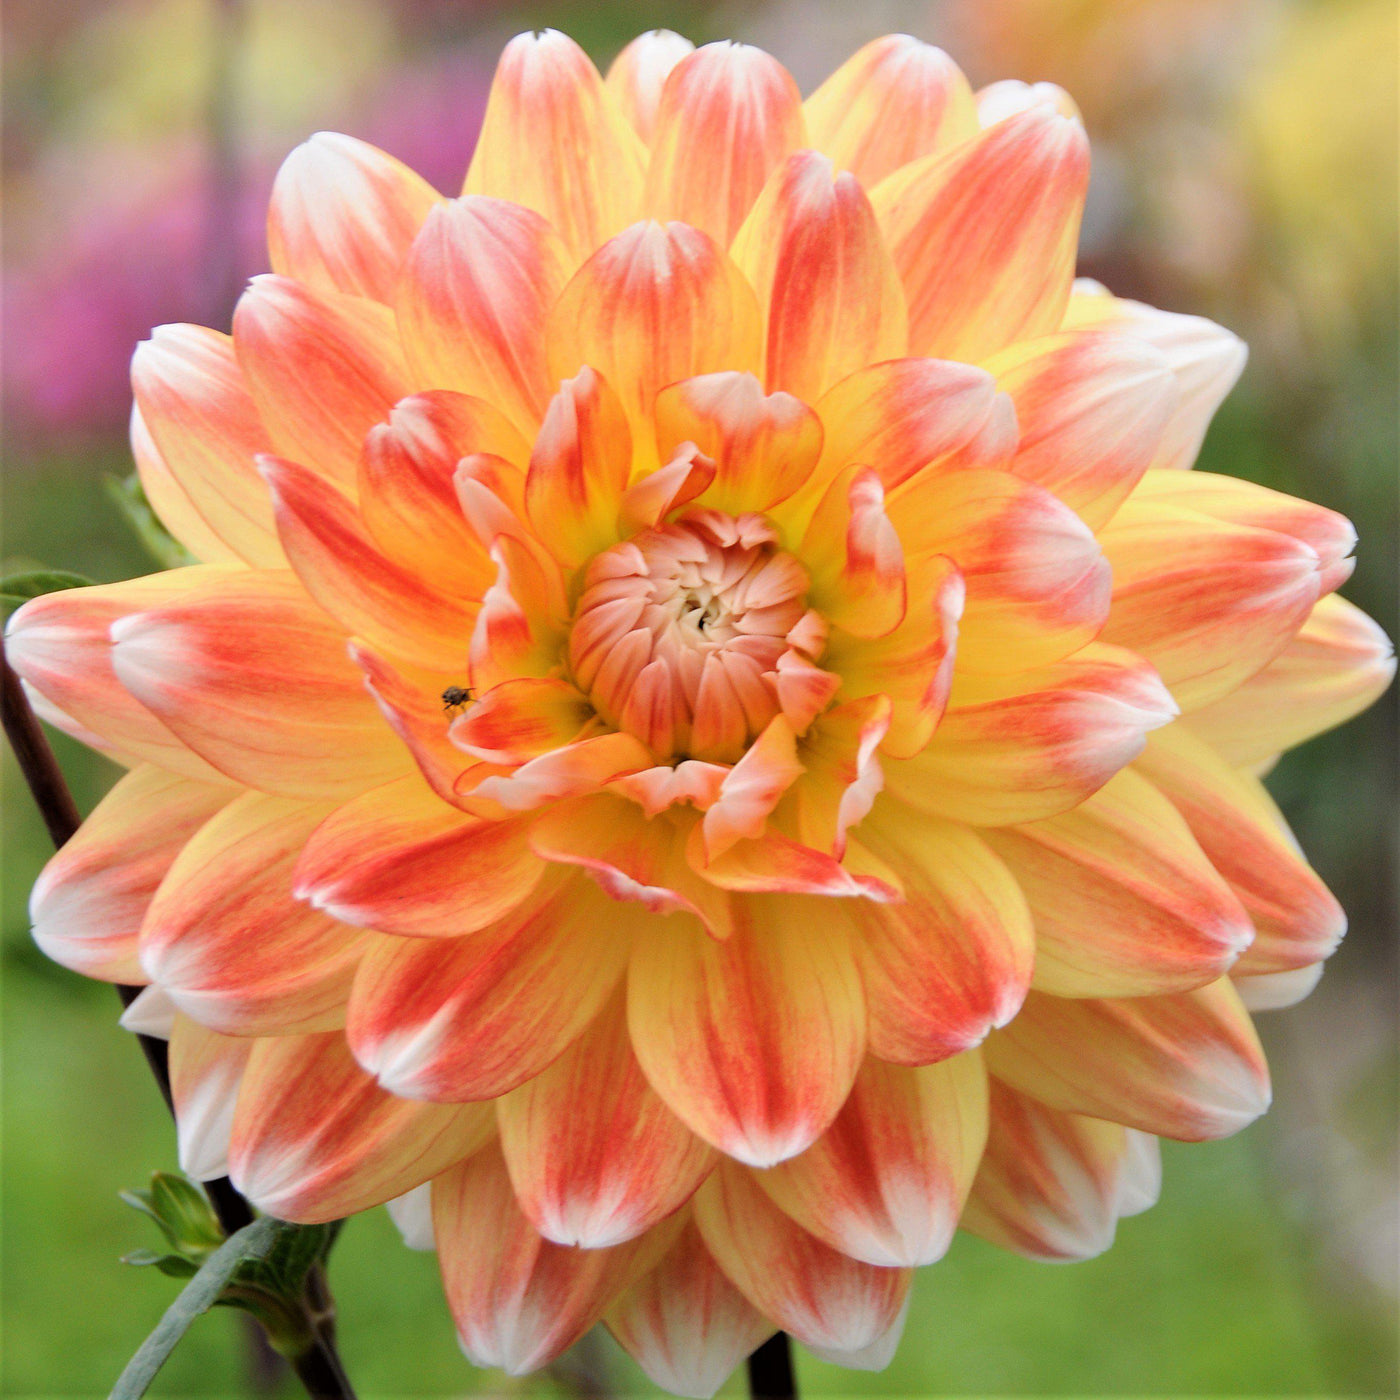 Dahlia Peaches \u0026 Cream & Dinner Plate Dahlia Peaches and Cream | Dinner Plate Dahlia Tubers ...